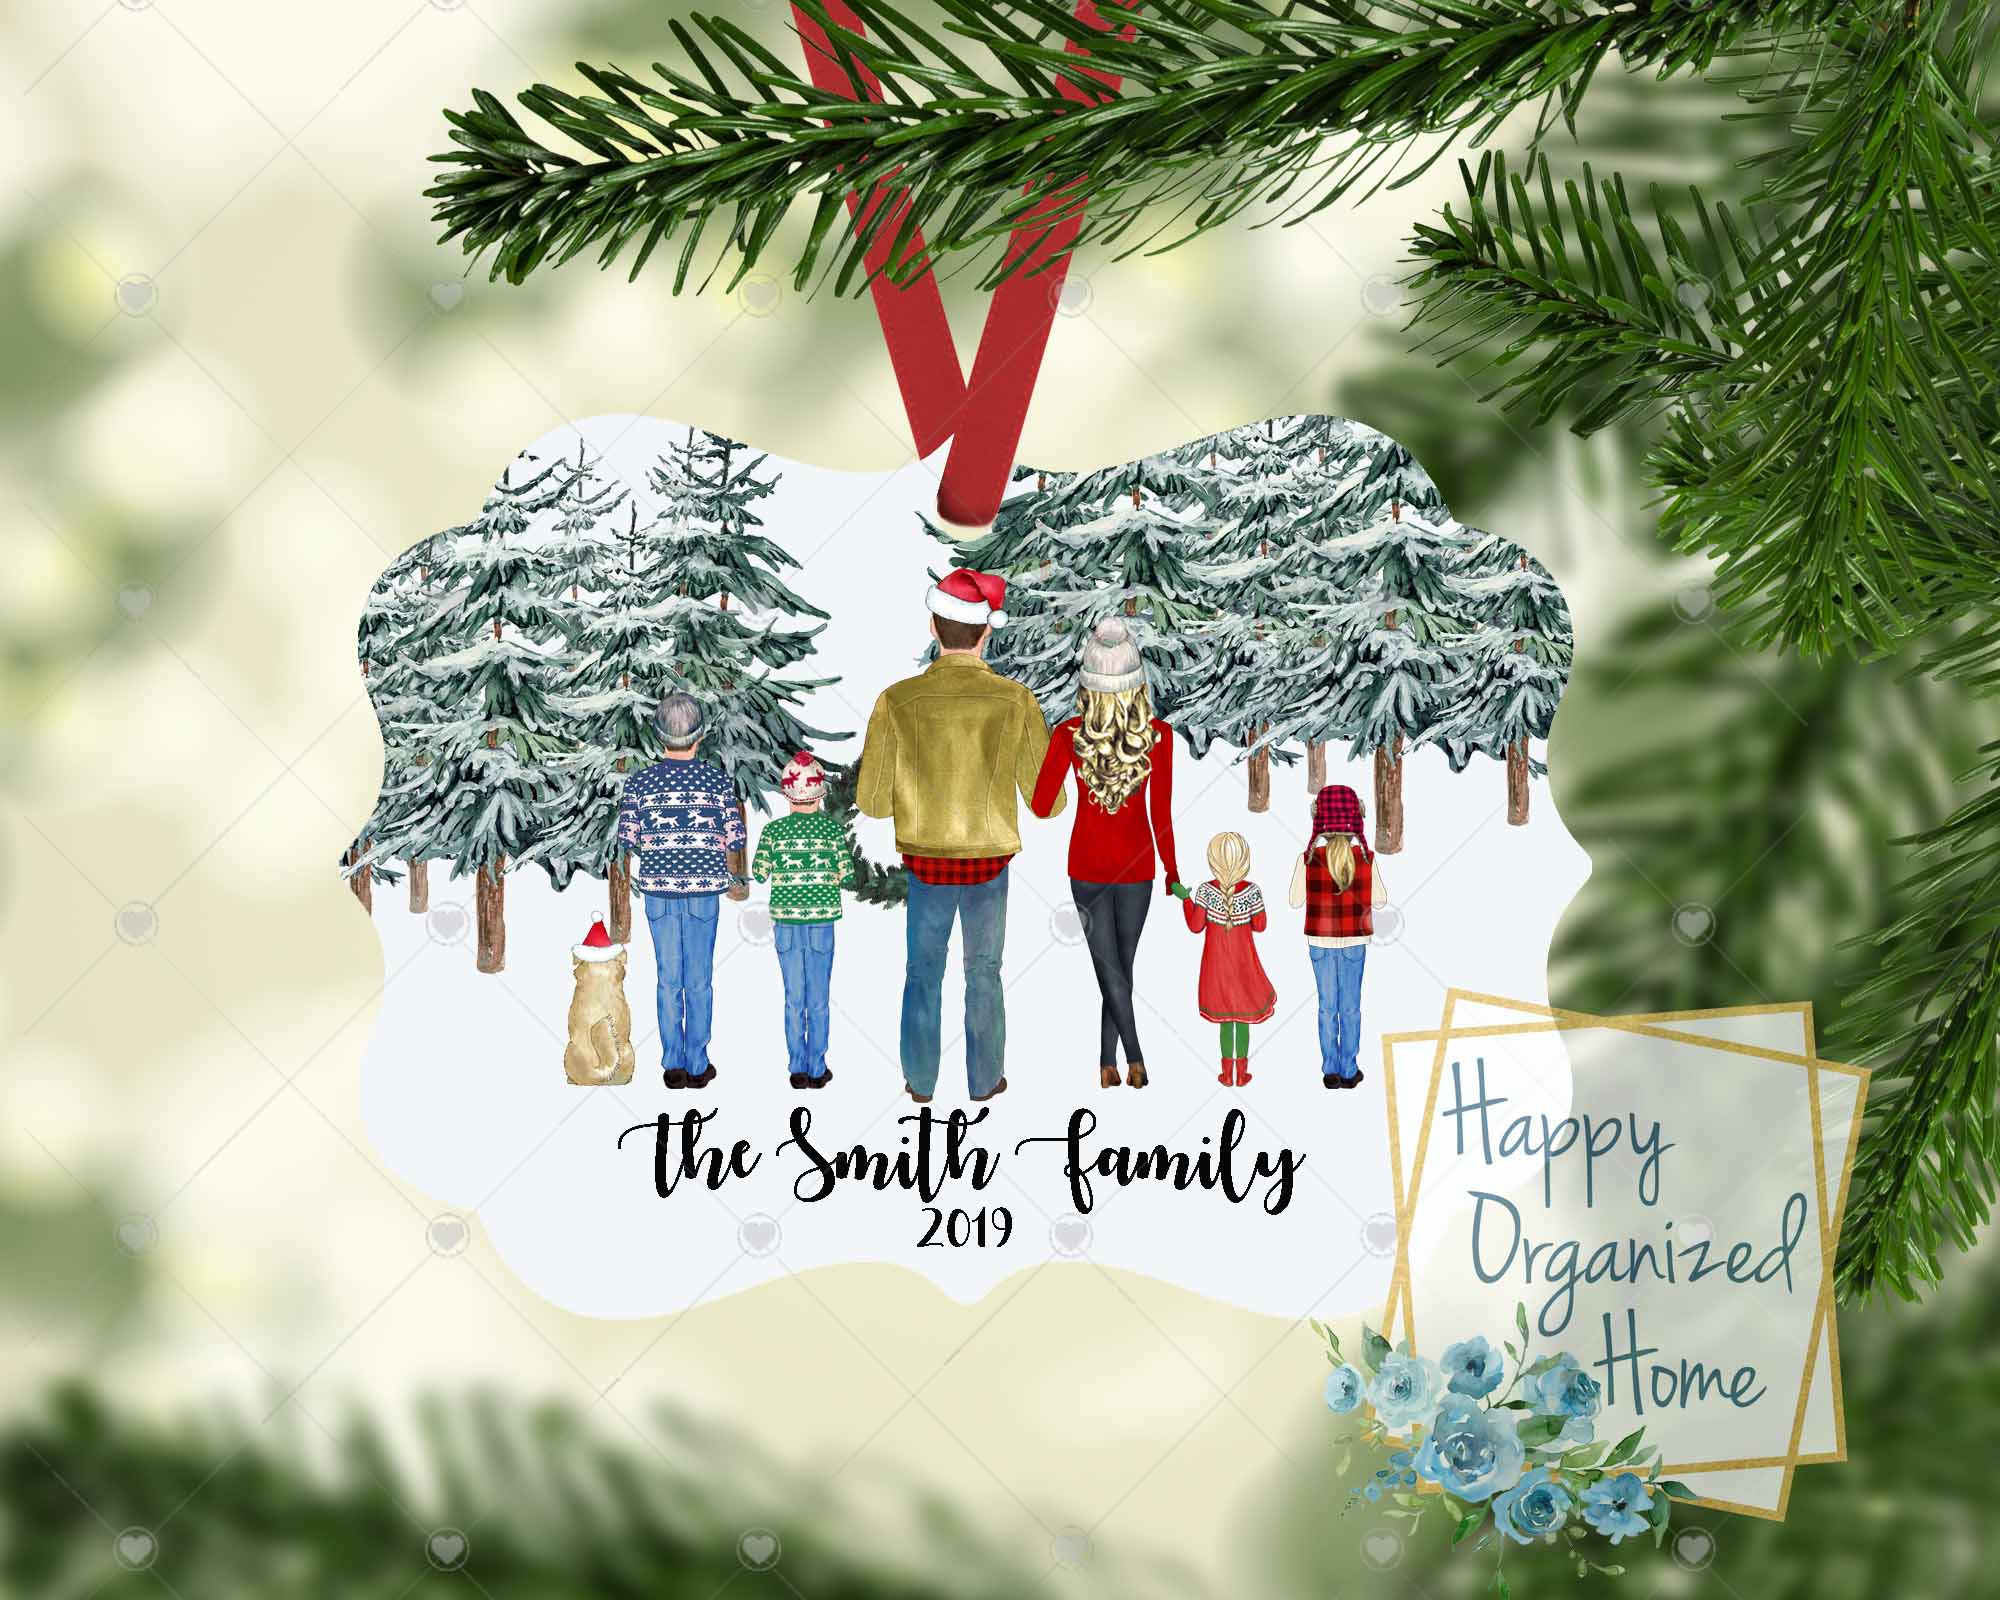 Christmas Family ornament - Customized and includes pets